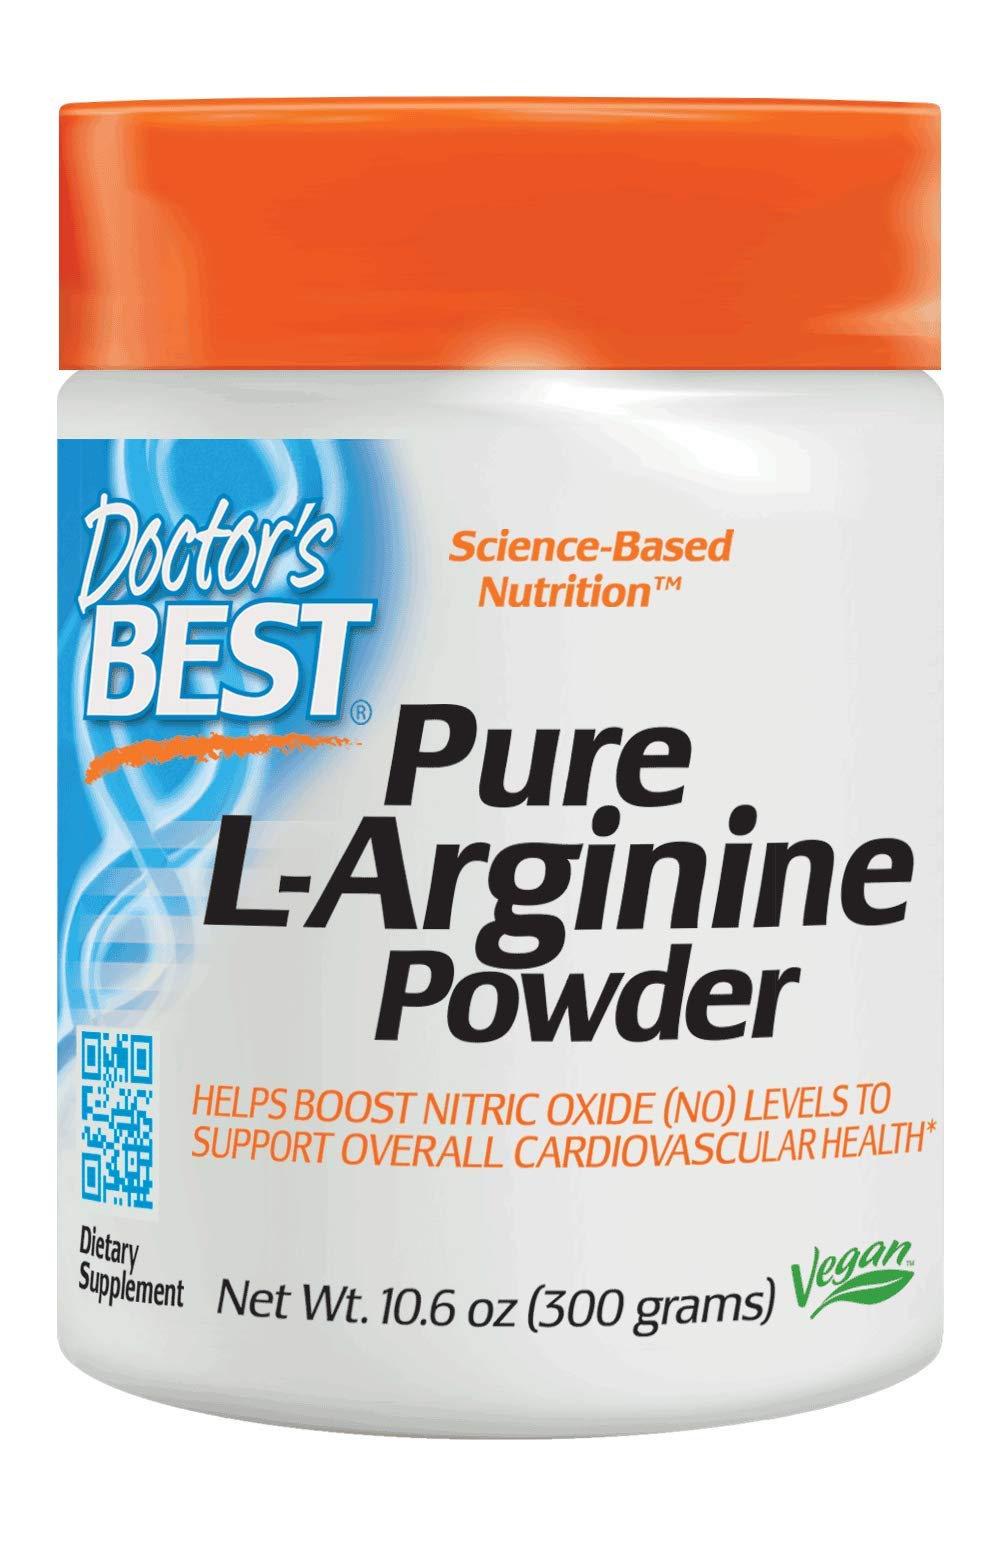 Doctor's Best L-Arginine Powder, Non-GMO, Vegan, Gluten Free, Soy Free, Helps Promote Muscle Growth, 300 Grams by Doctor's Best